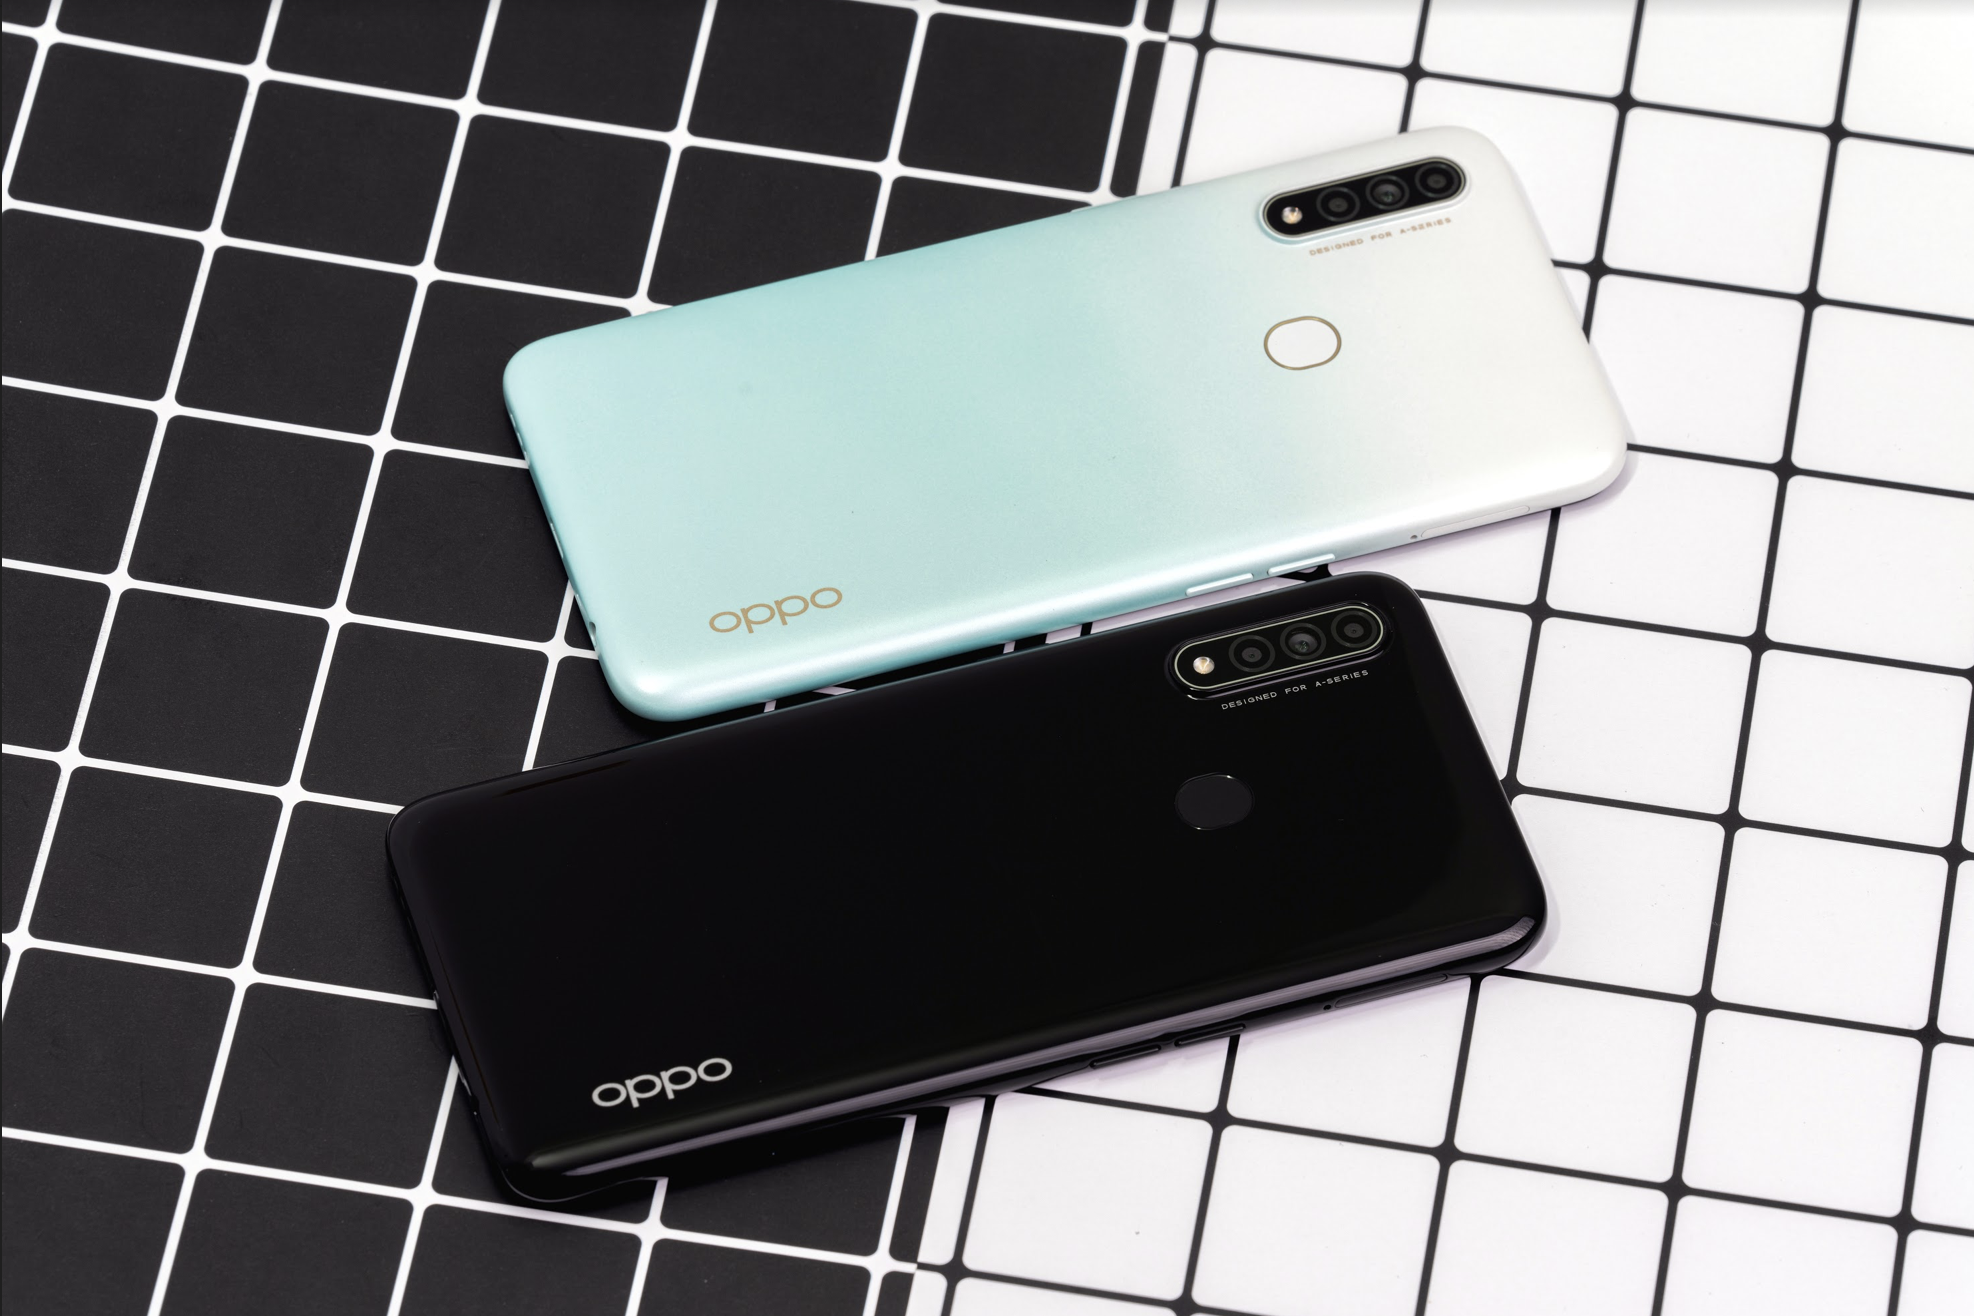 Oppo A31 co gi de chinh phuc nguoi dung tre? hinh anh 1 image002.png